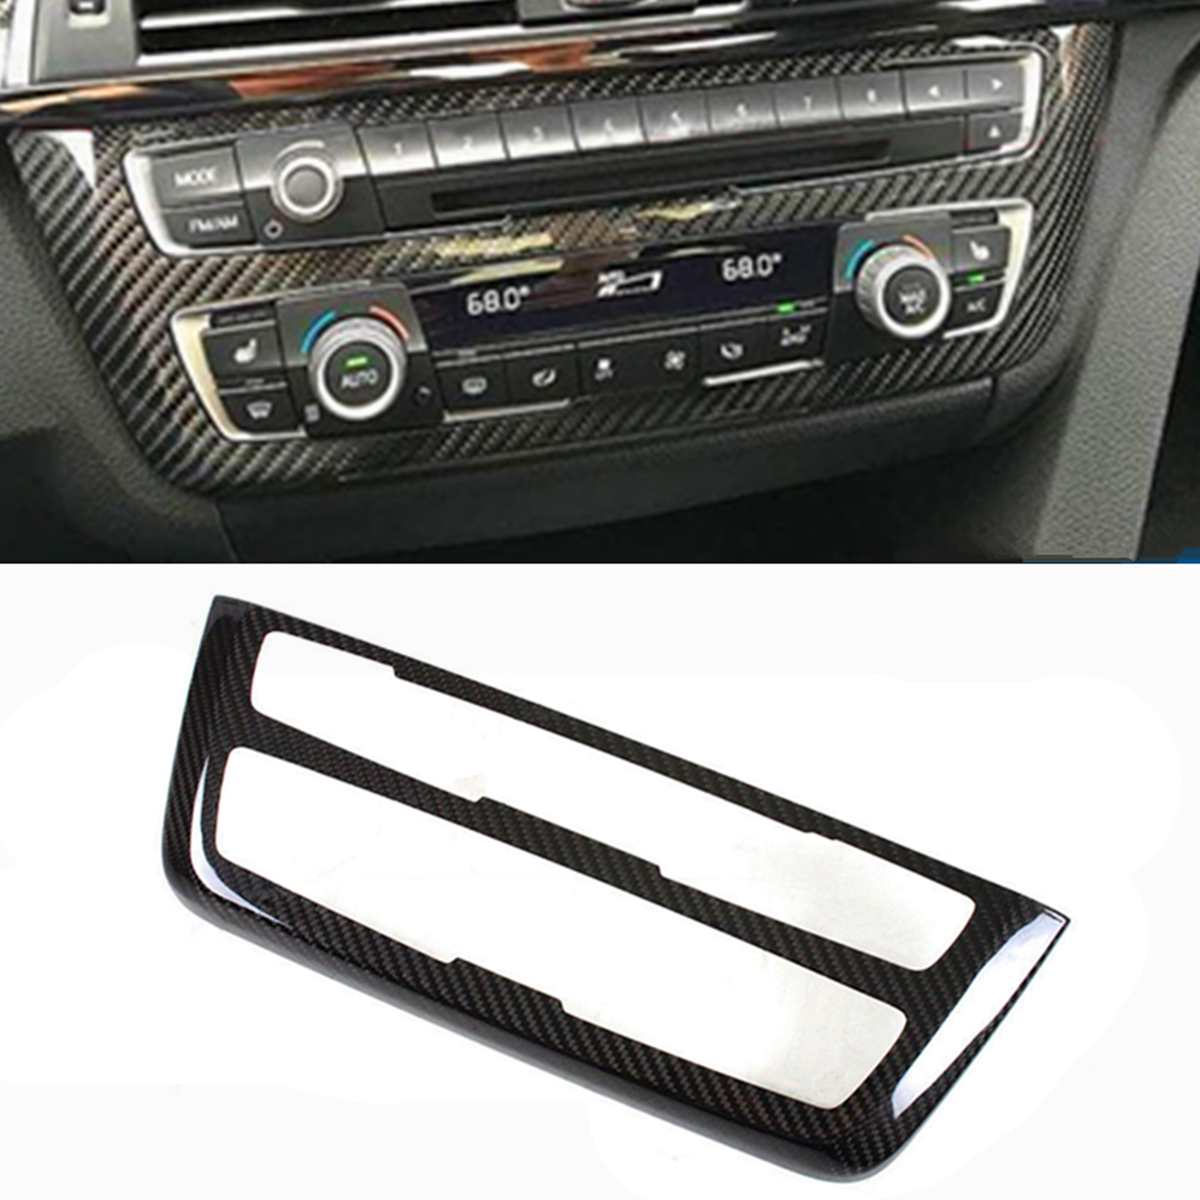 New Carbon Fiber Car Air Condition Control CD AC Console Control Panel Add-On Trim Hard Cover Fit For BMW M3 M4 2014-2018